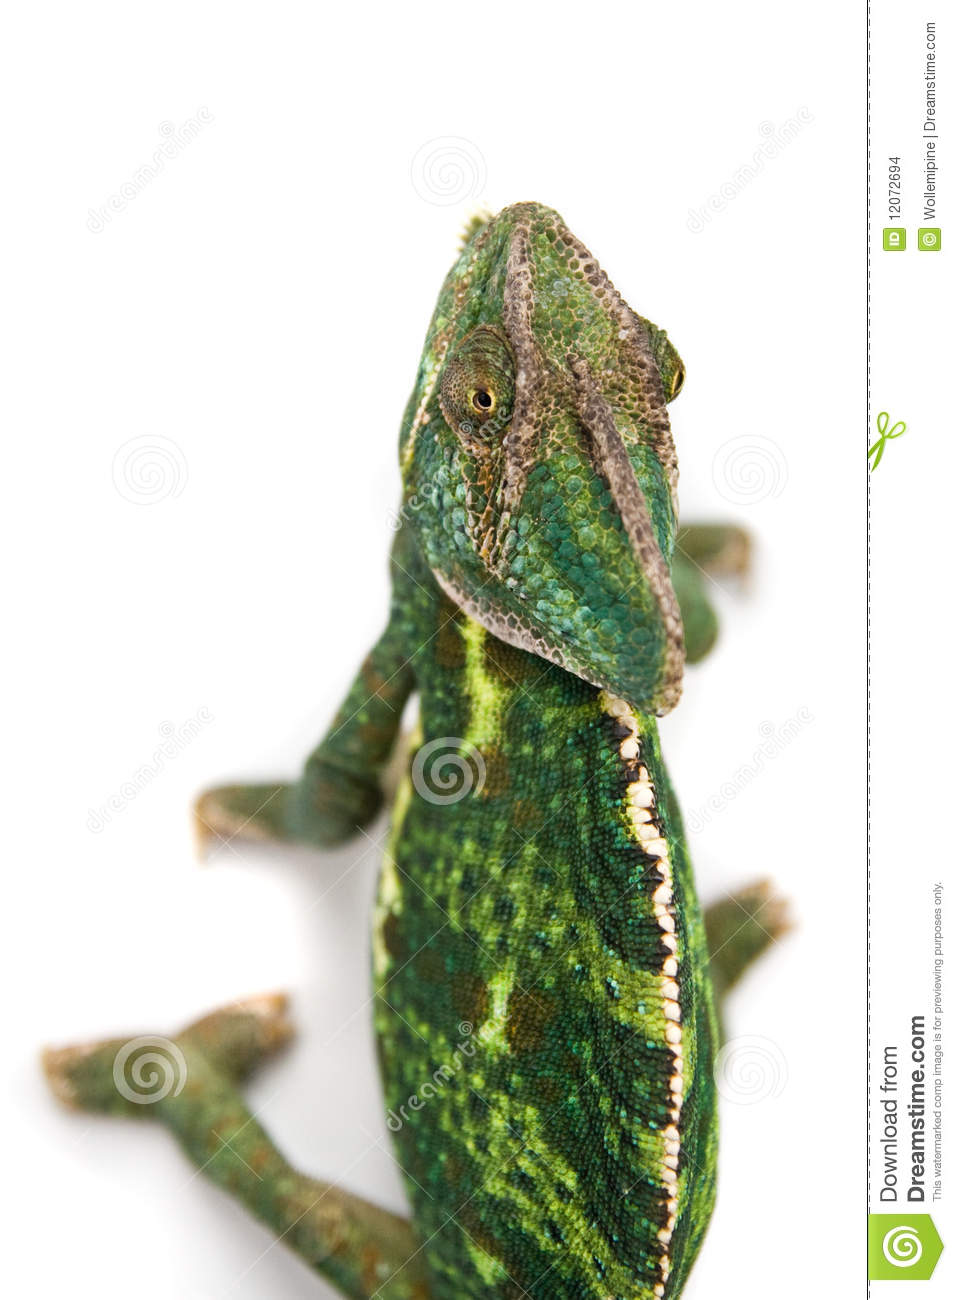 Chameleon Camouflage Isolated With Clipping Path Stock Images - Image ...